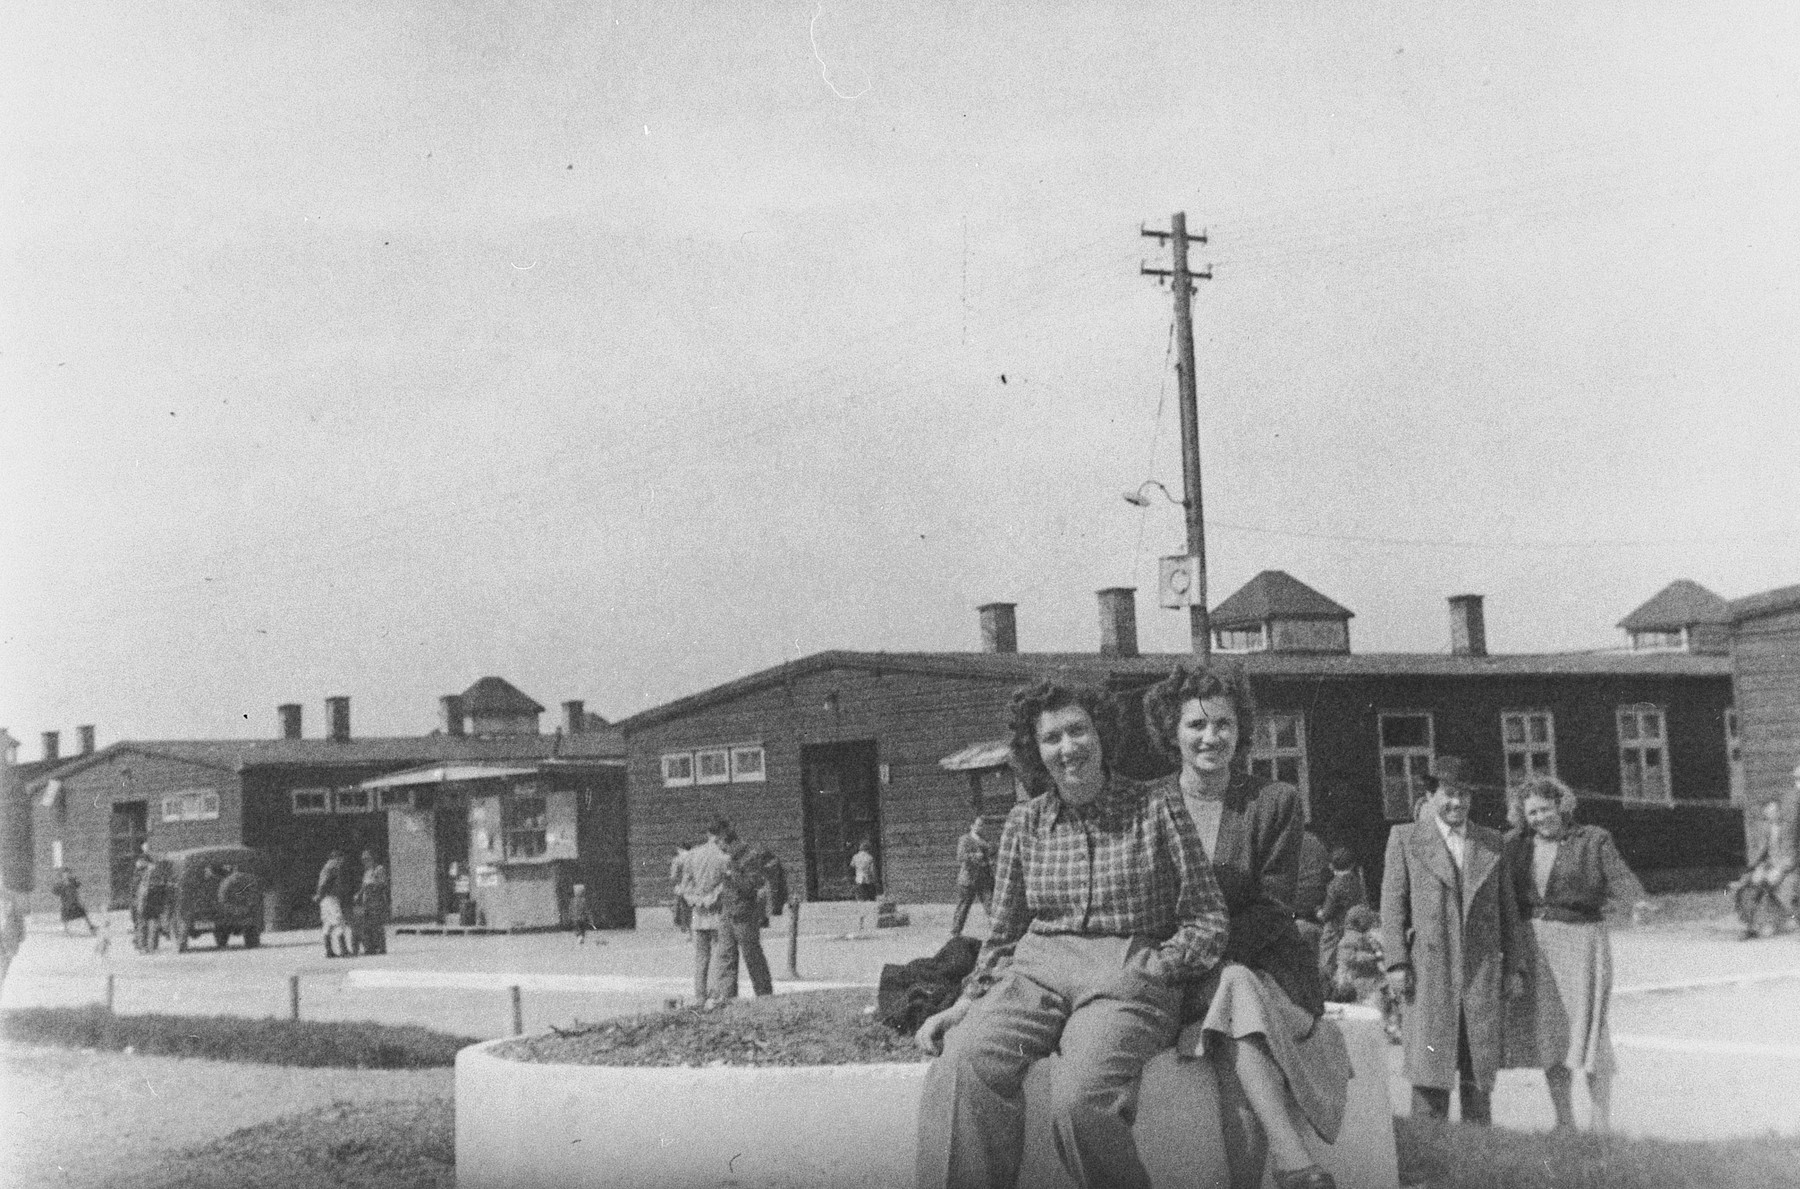 Jewish women pose outside the barracks in the Wels displaced persons' camp.